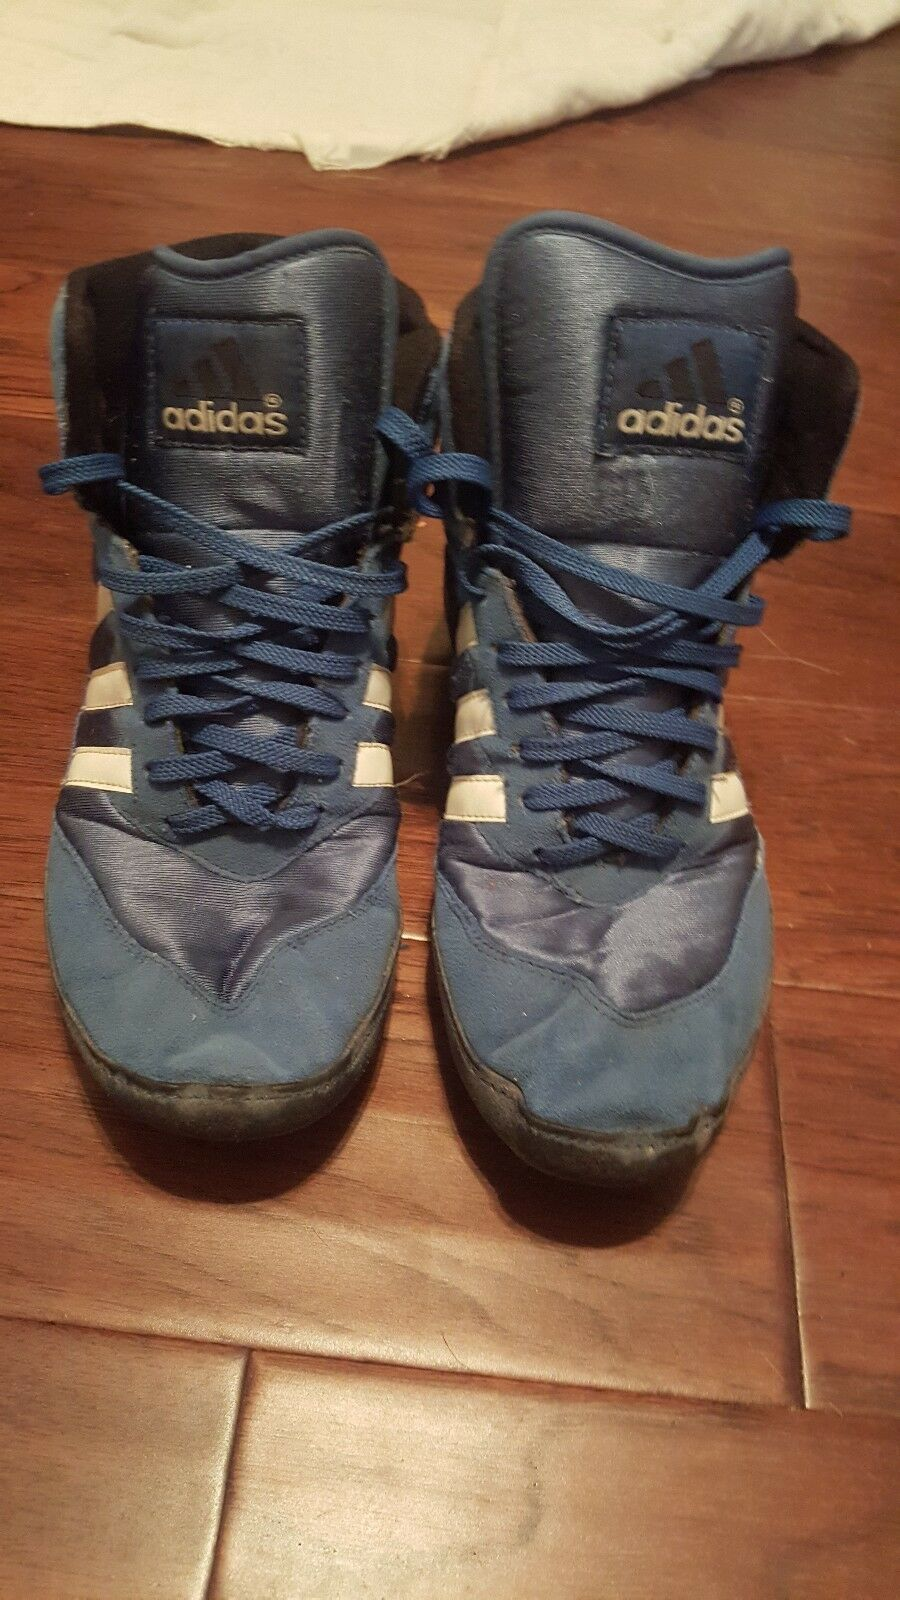 Adidas Absolute bluee Wrestling shoes Size 10 1995 great condition Vintage